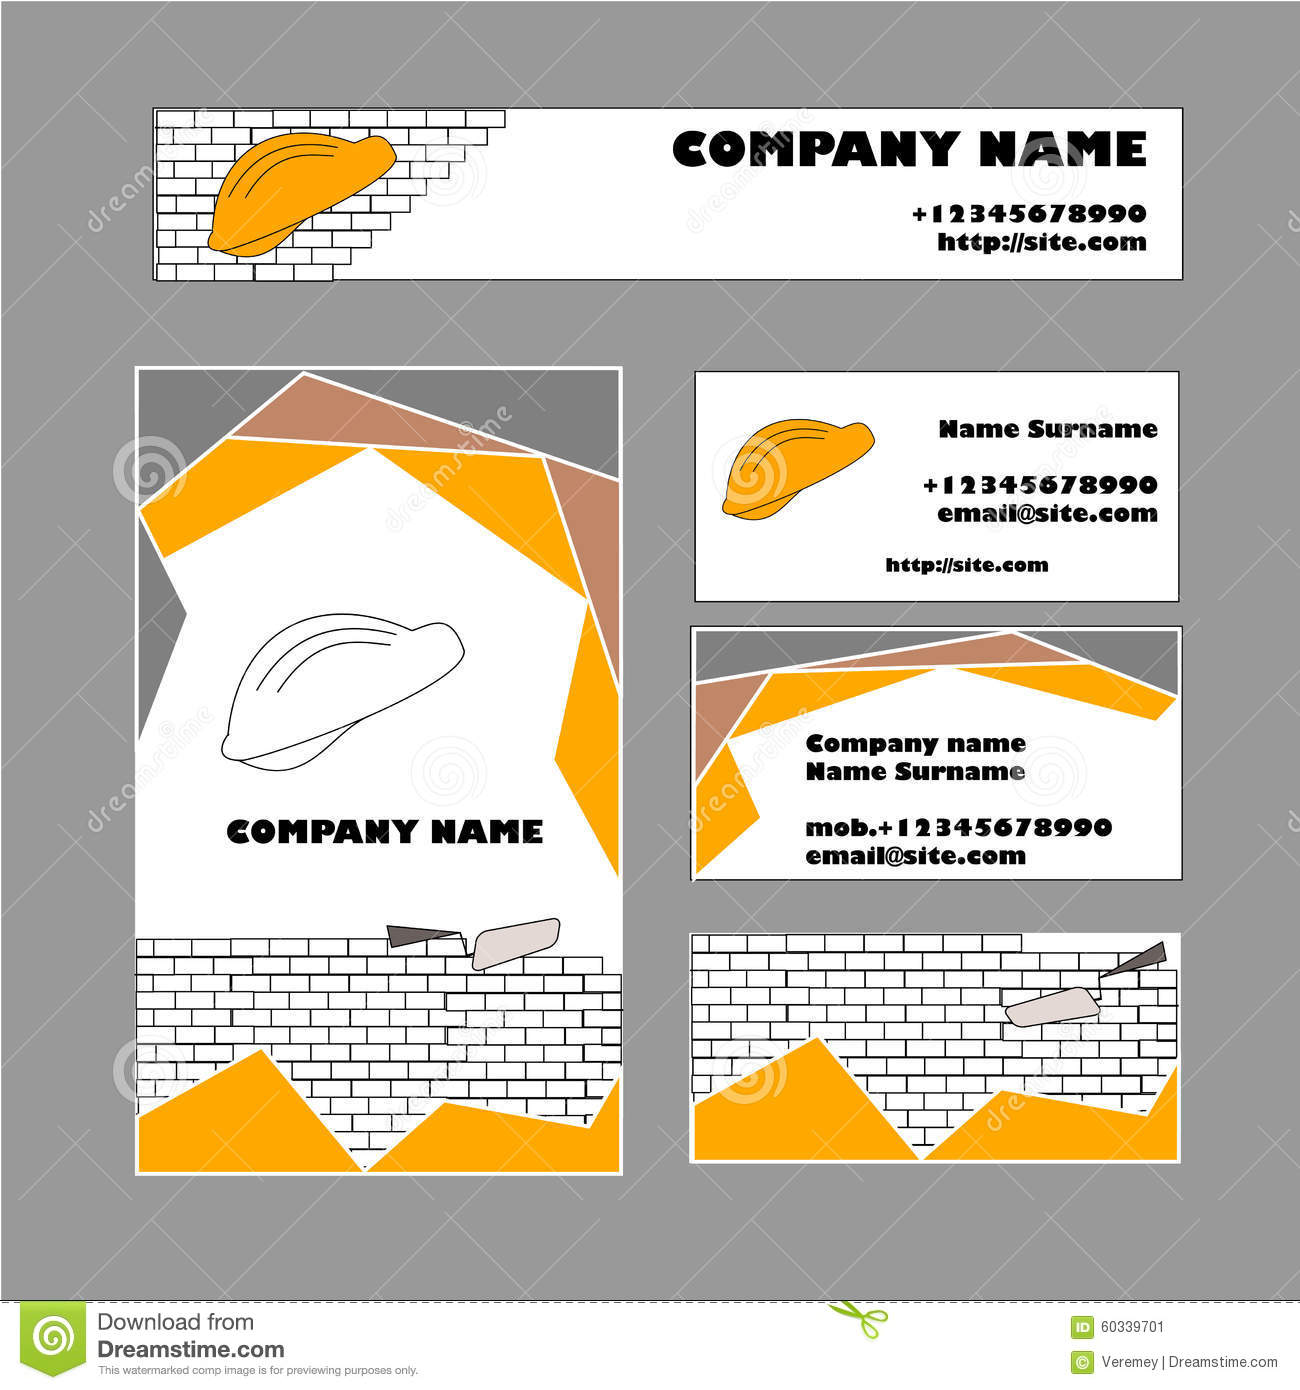 009 Exceptional Construction Busines Card Template Example  Templates Visiting Company Format Design PsdFull